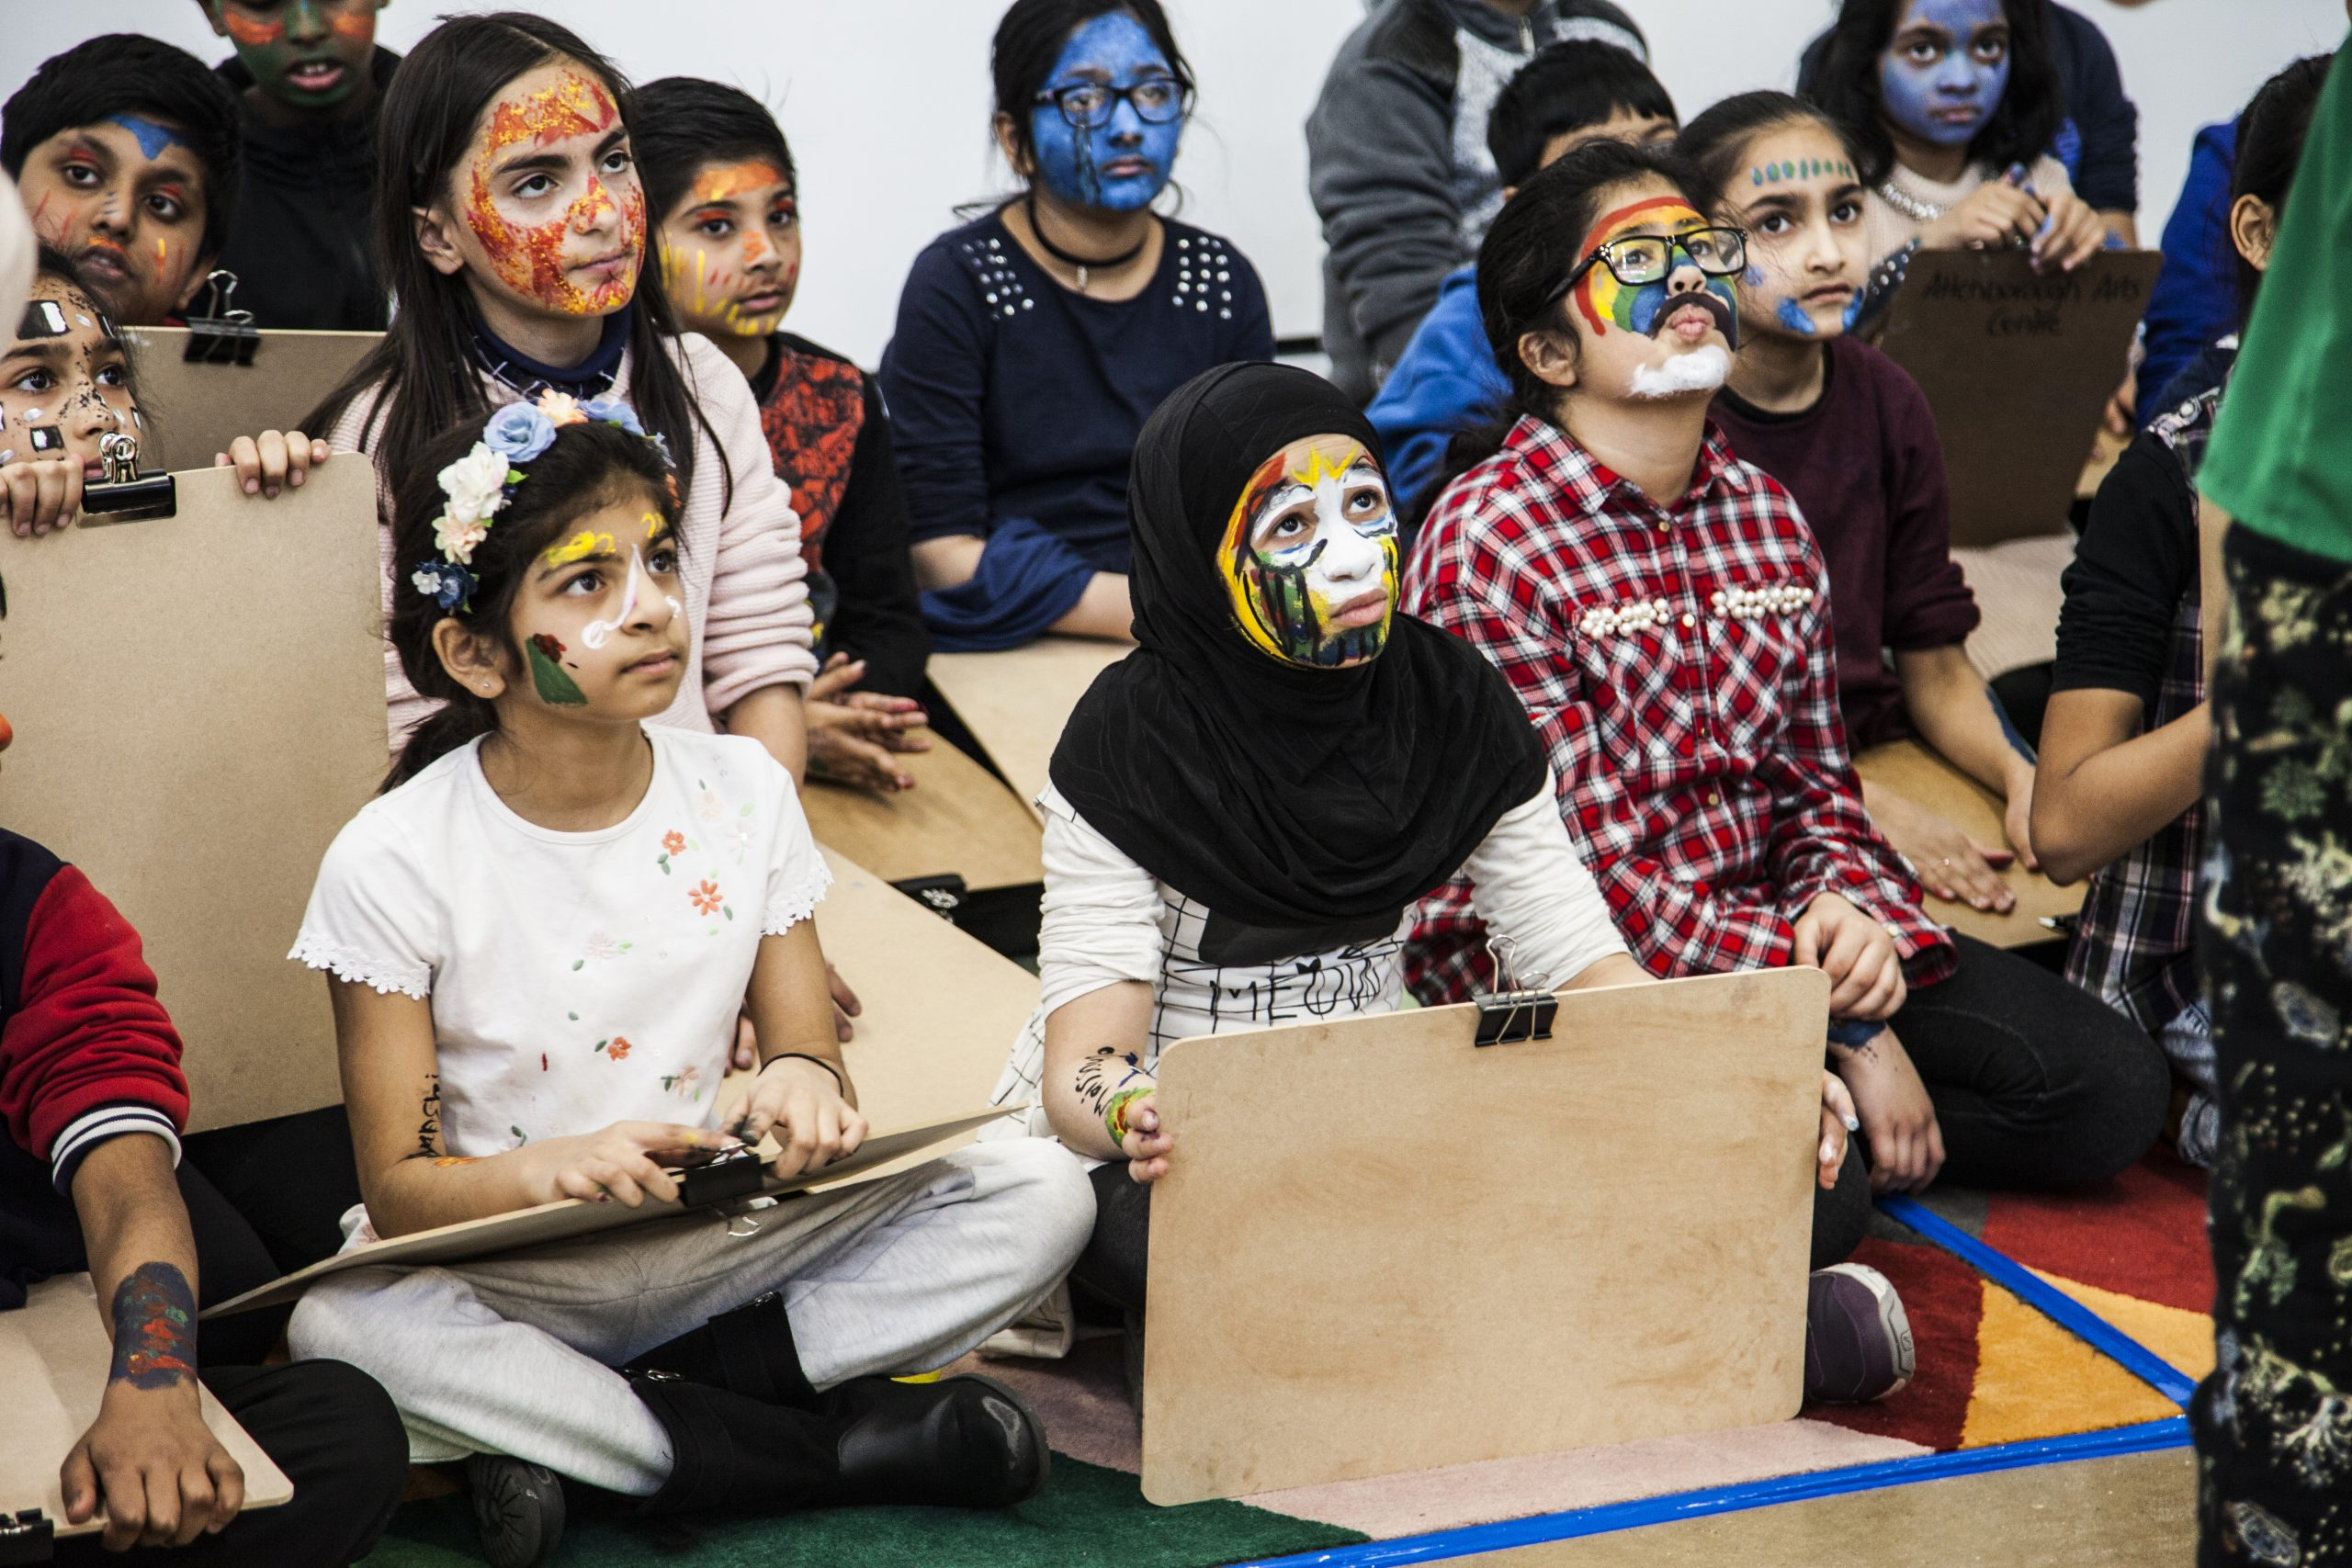 A group of young children with bright painted faces